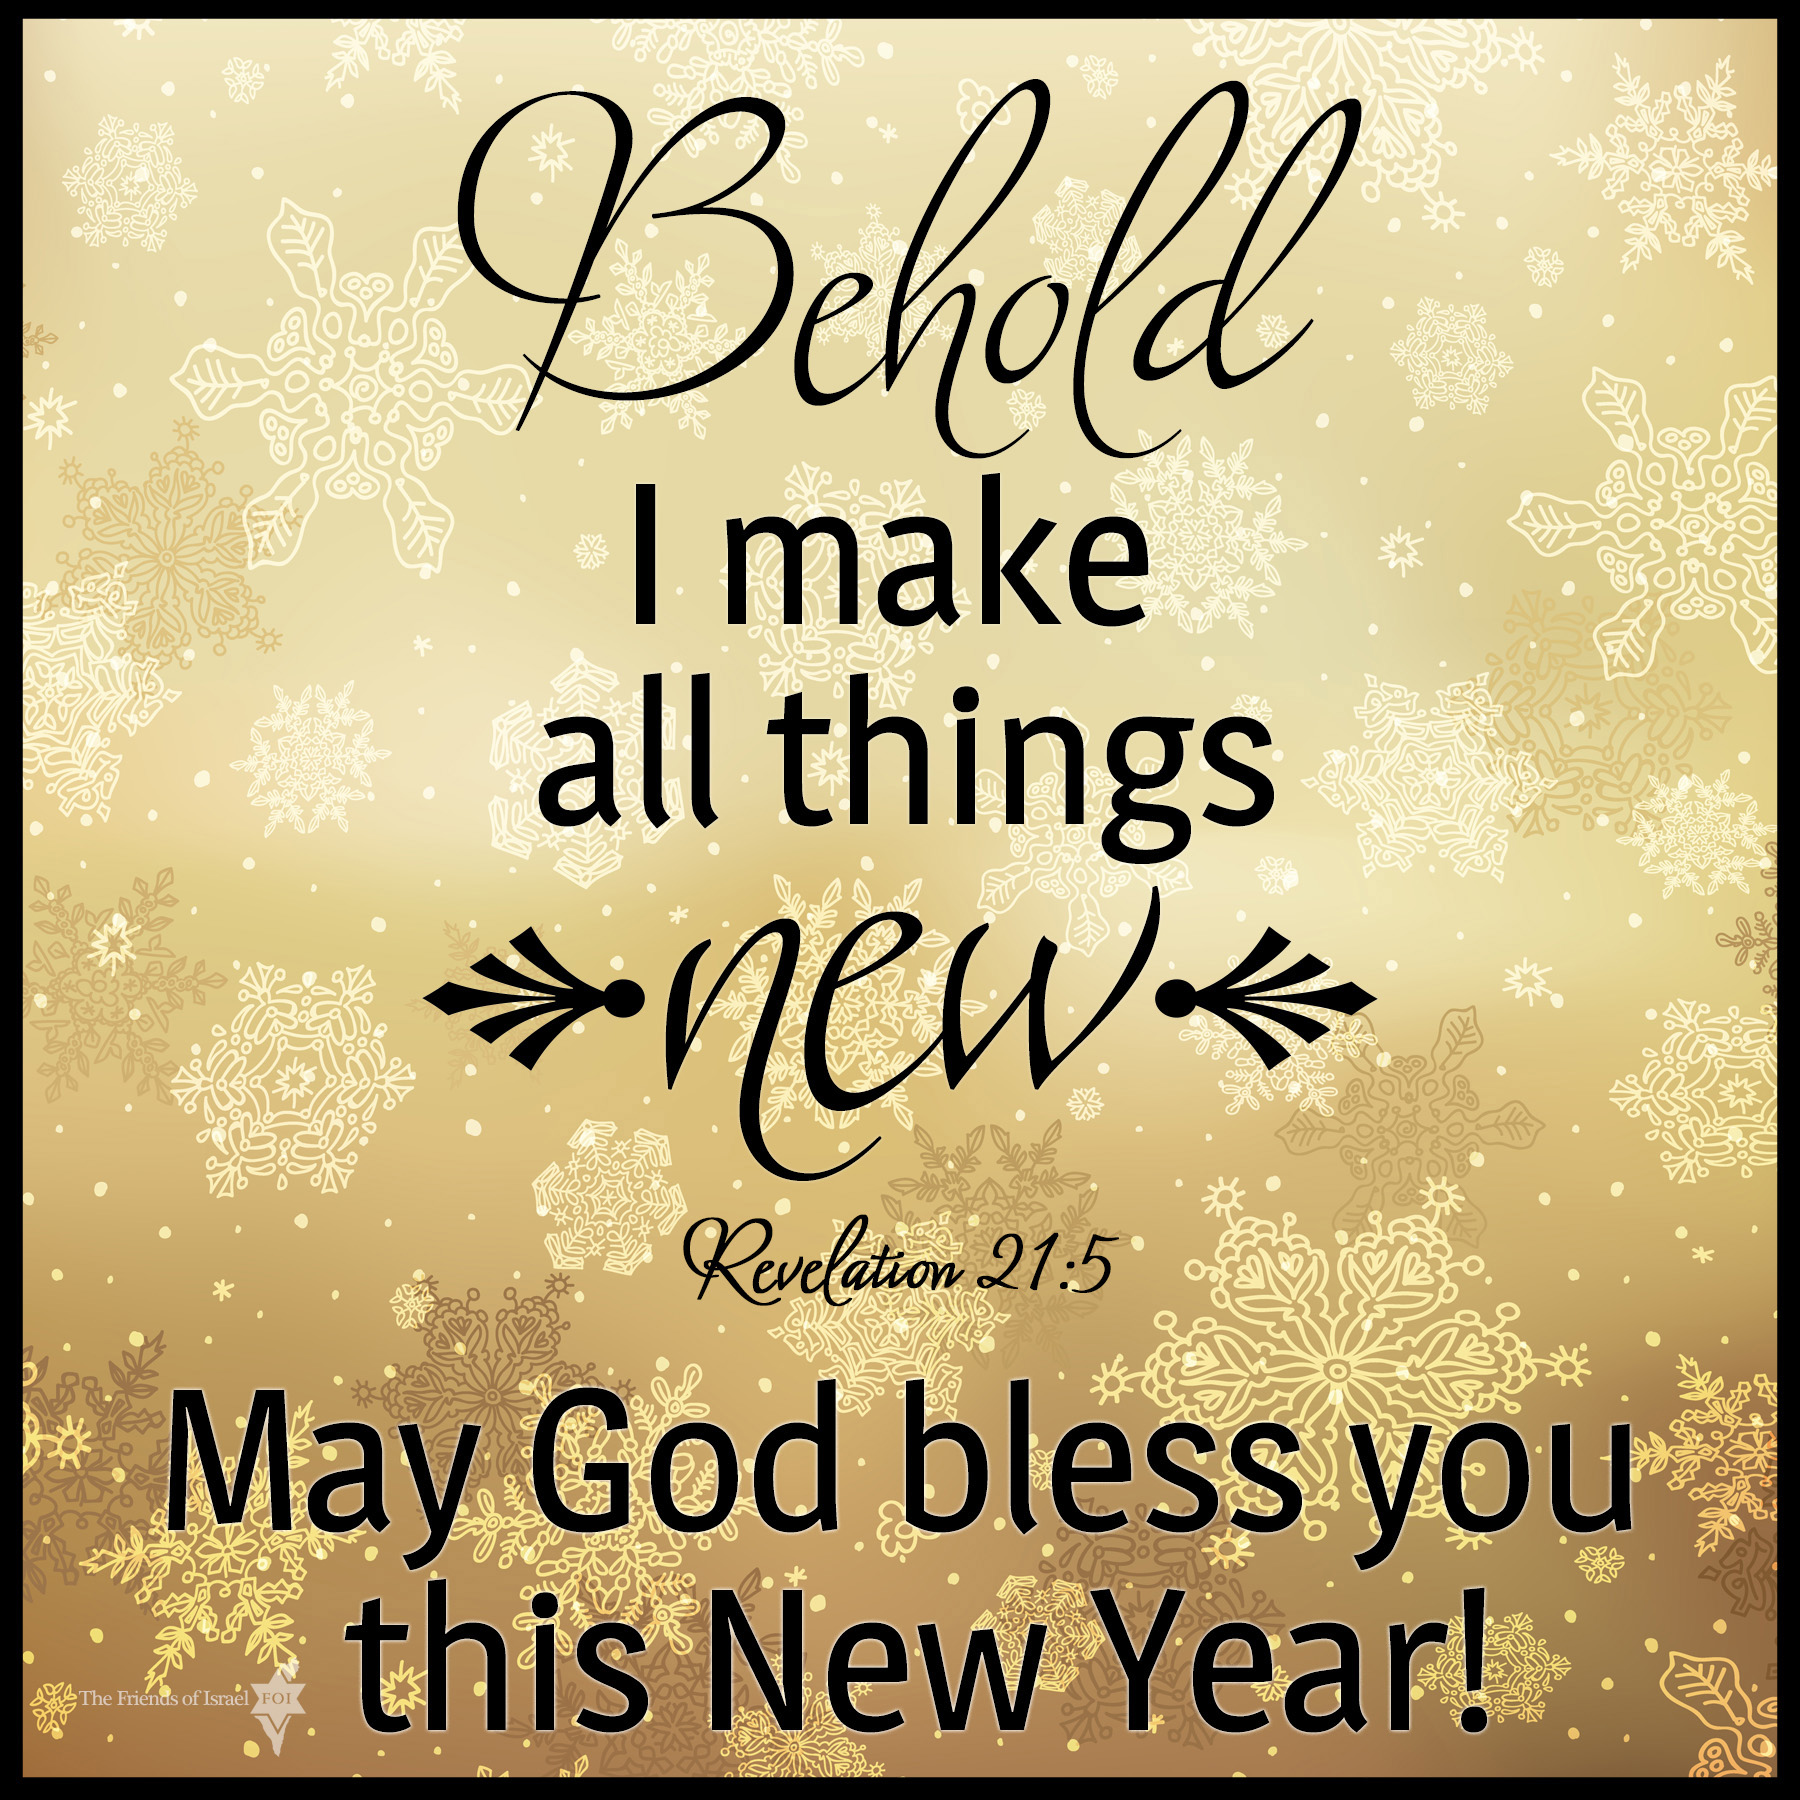 New Year Images With Bible Quotes: Pinterest • The World's Catalog Of Ideas